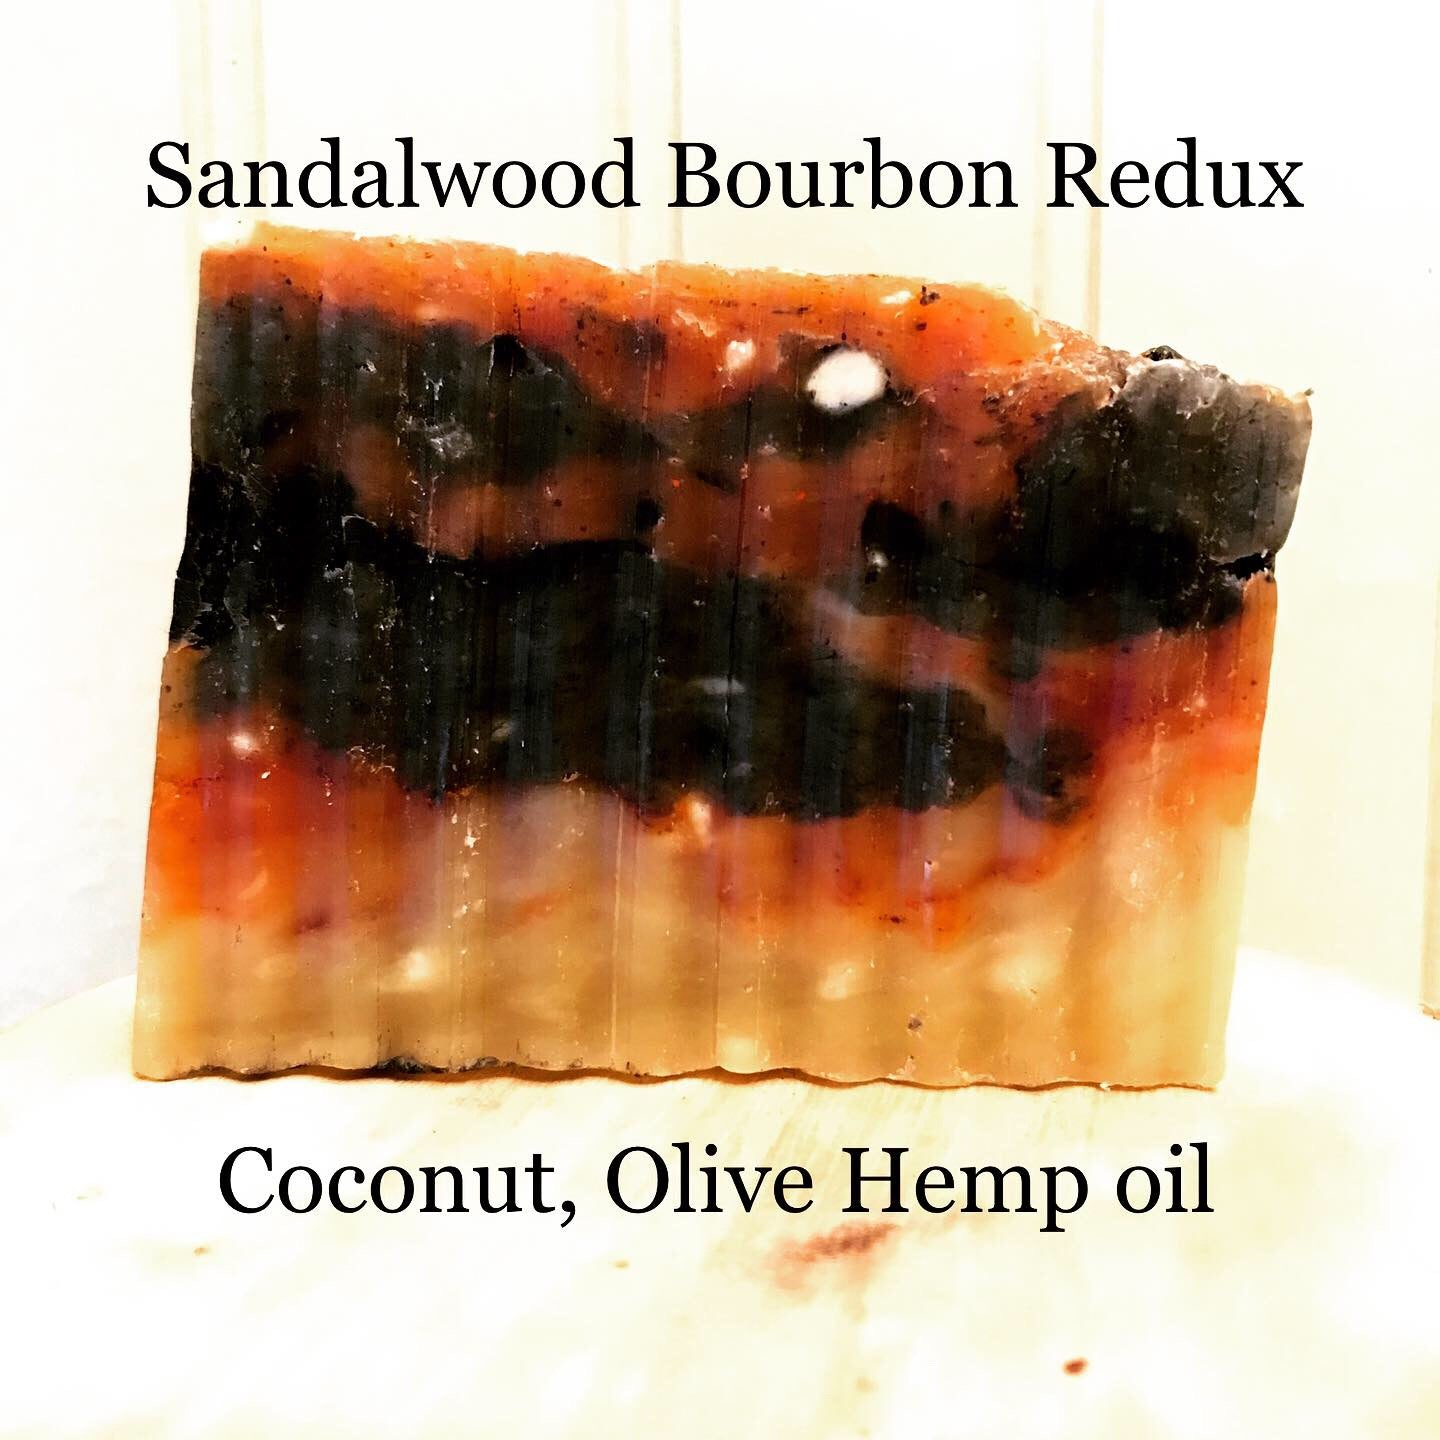 Sandalwood Bourbon Moisturizing Soap Redux